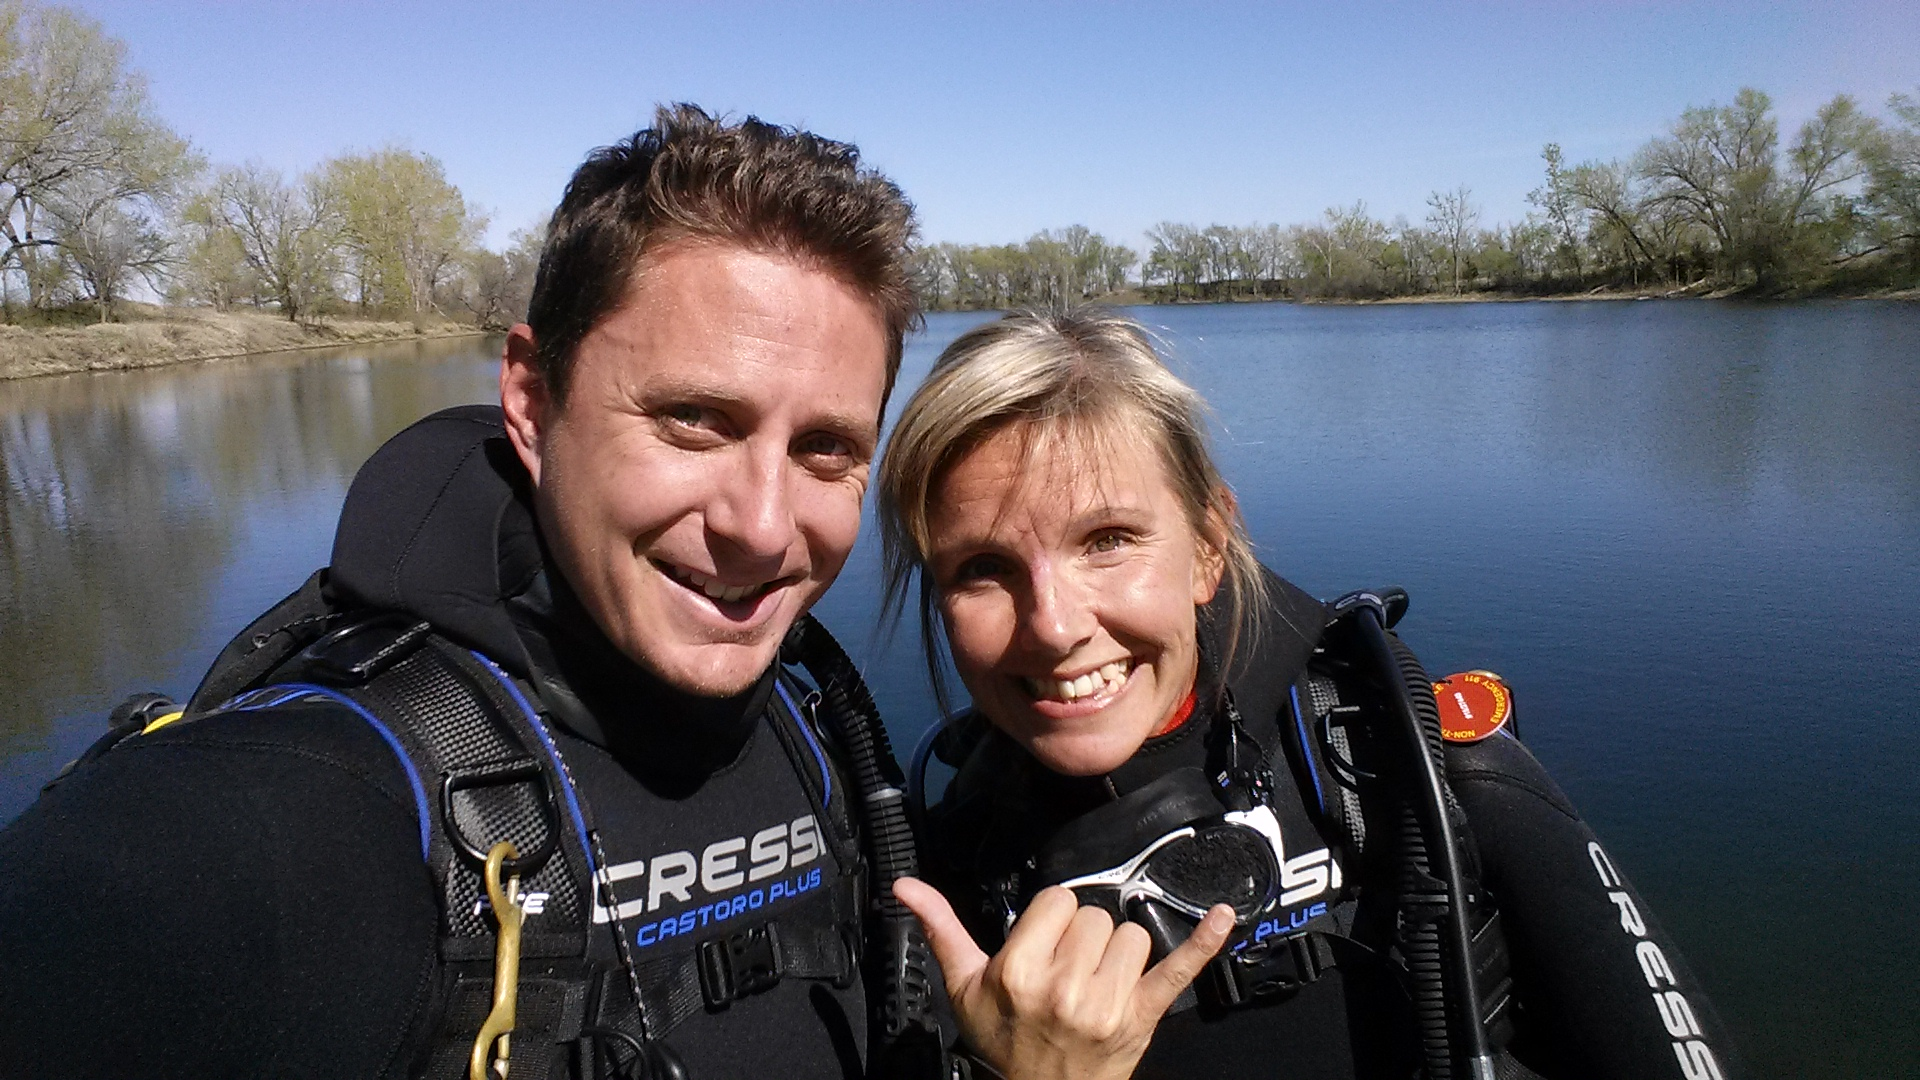 Scuba Dive Nebraska, Sandy Channels, Christine West, Adam Maire, Cressi, Dive and Drive, #GetYourFinsOn